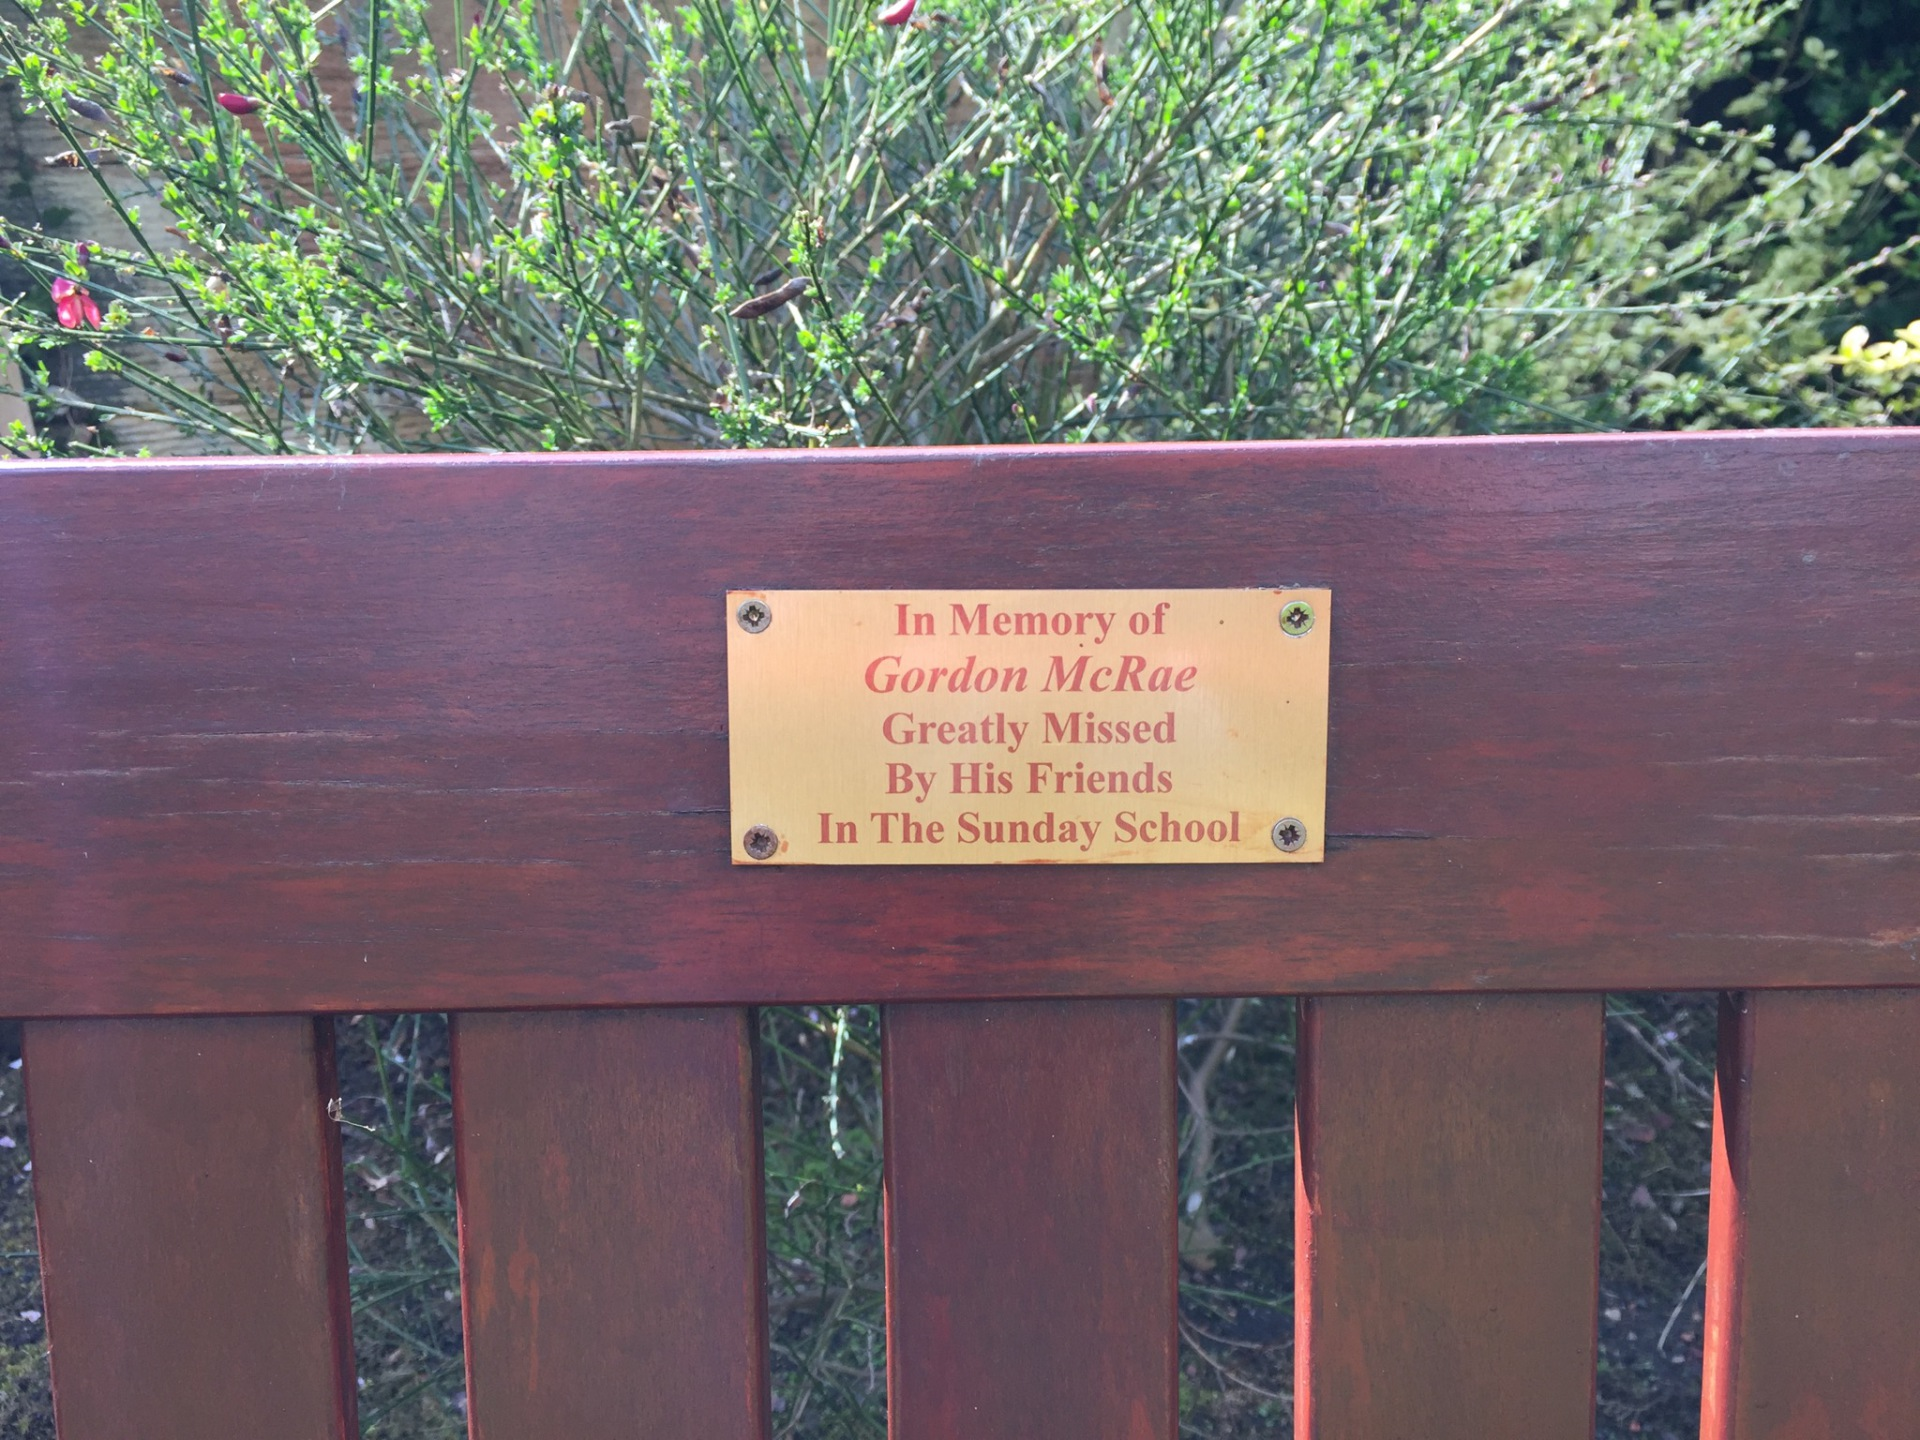 Plaque on bench